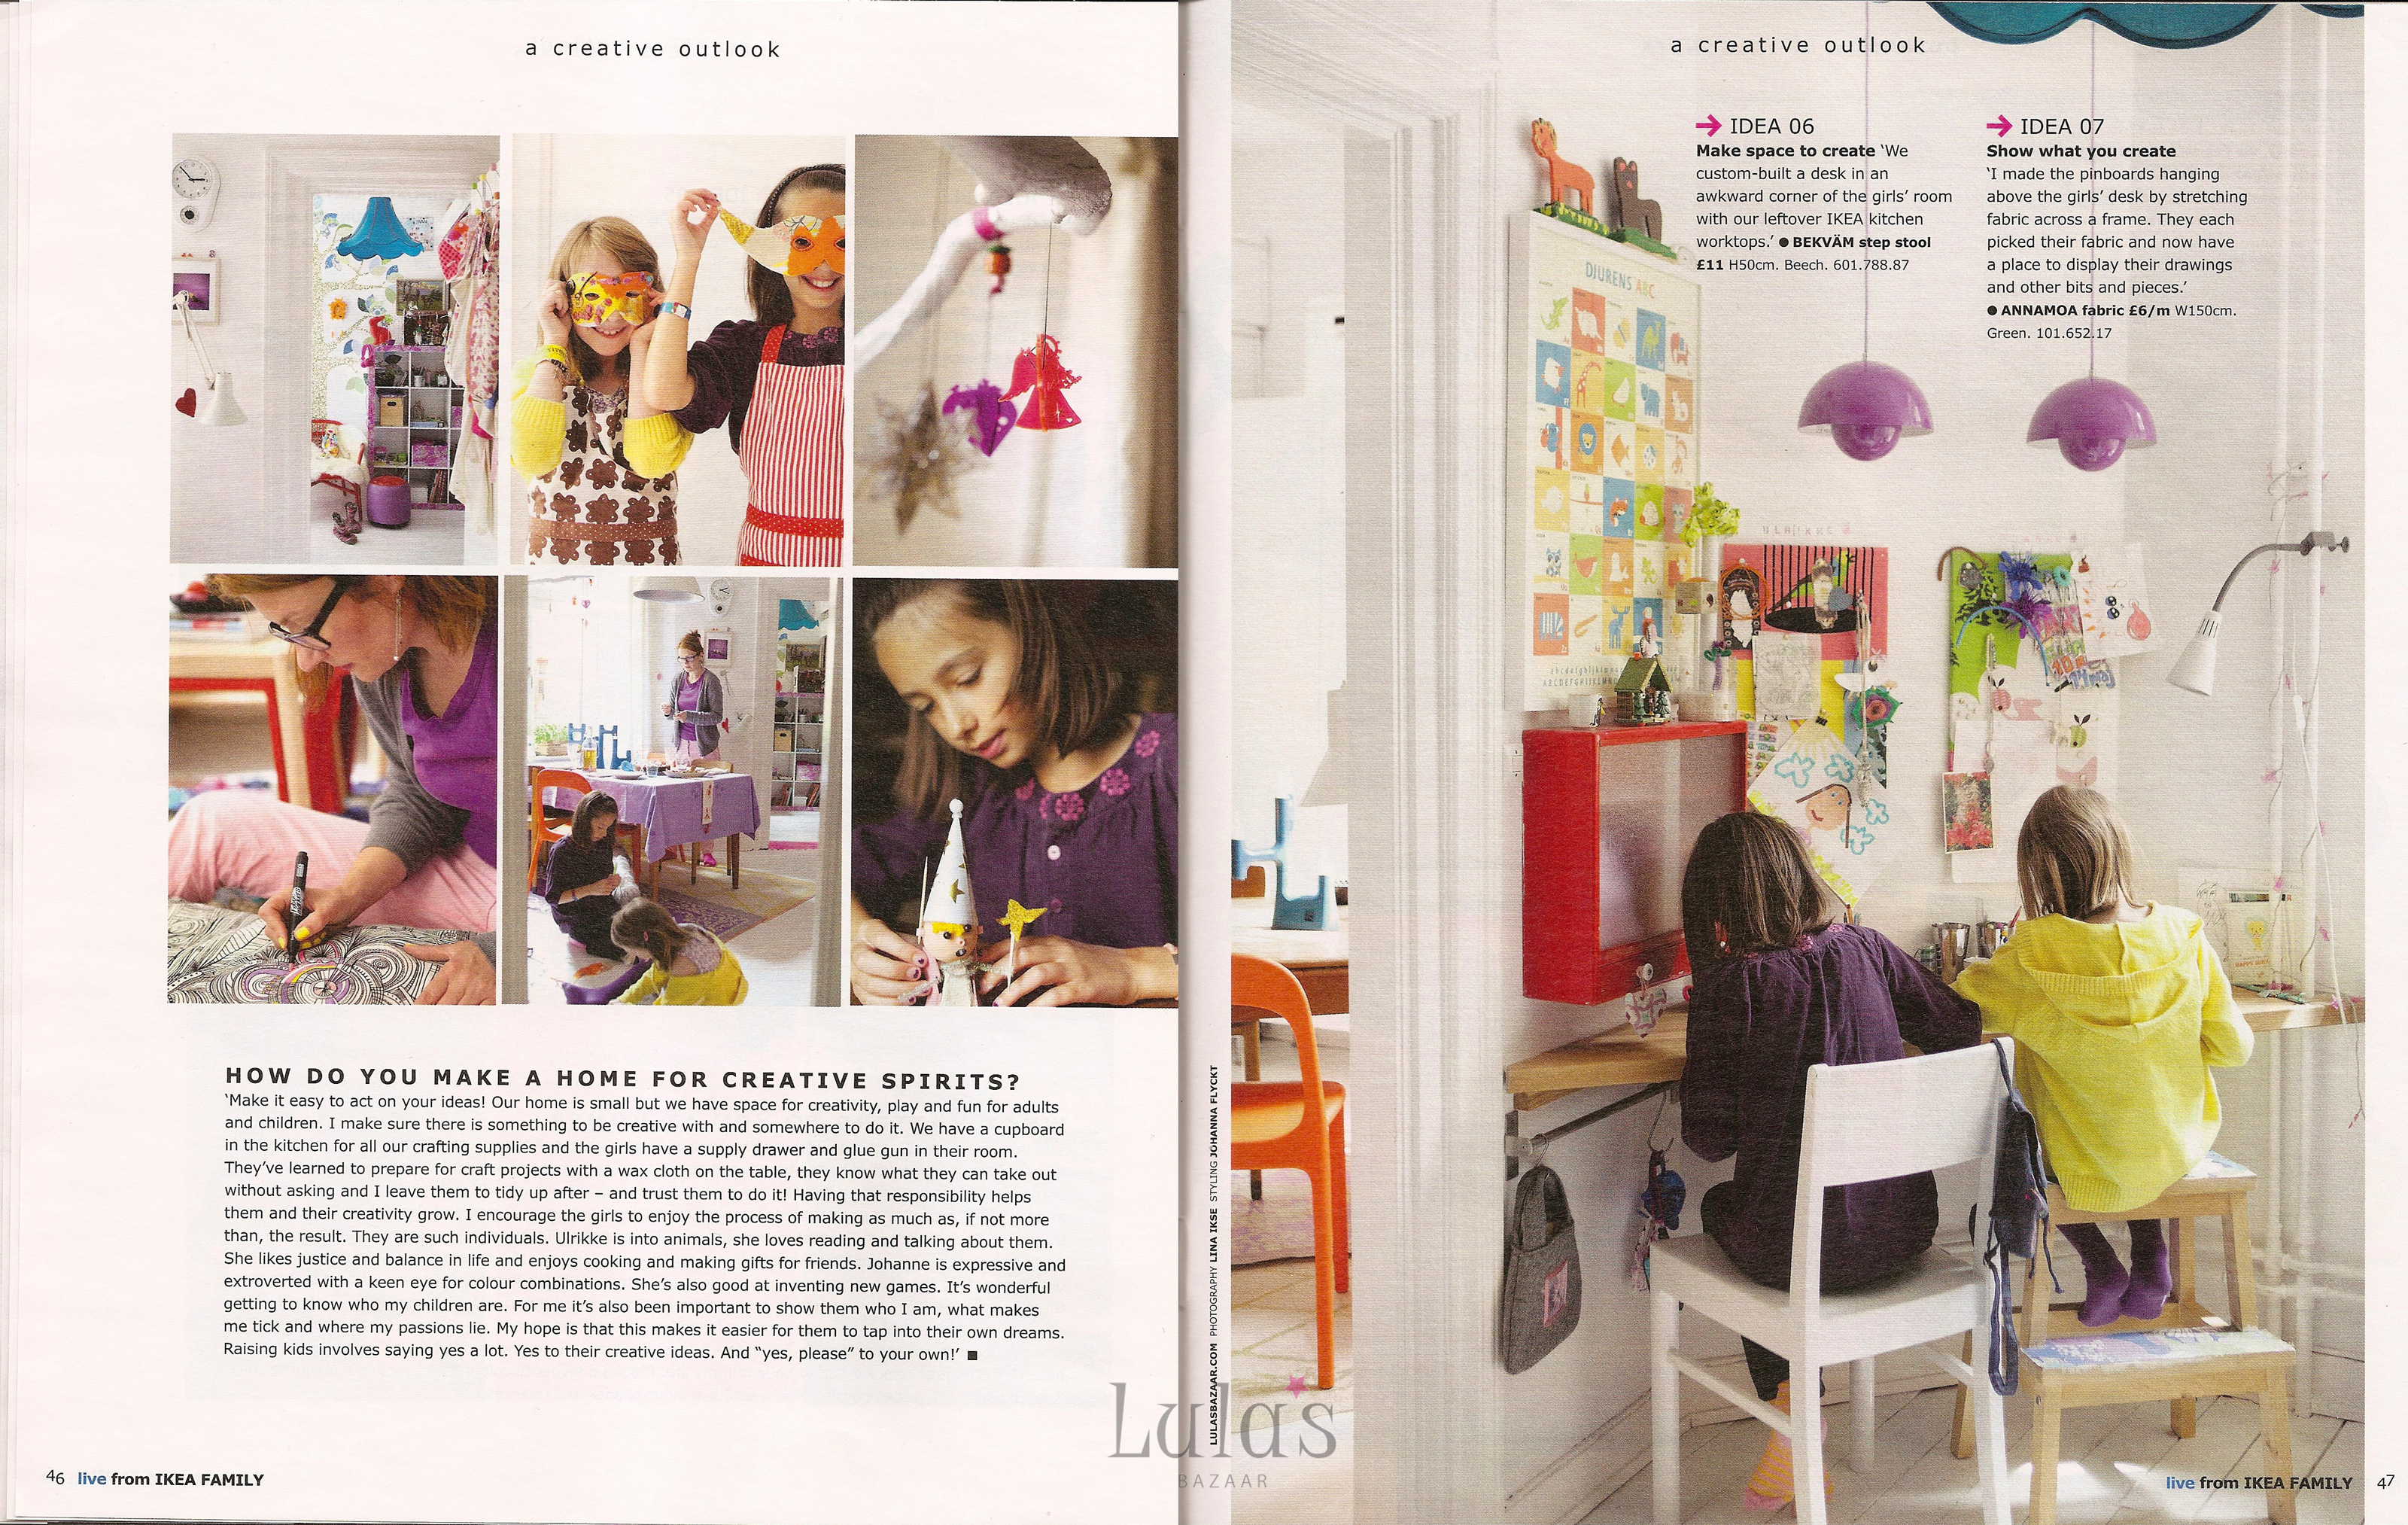 ikea live magazine UK spread 4